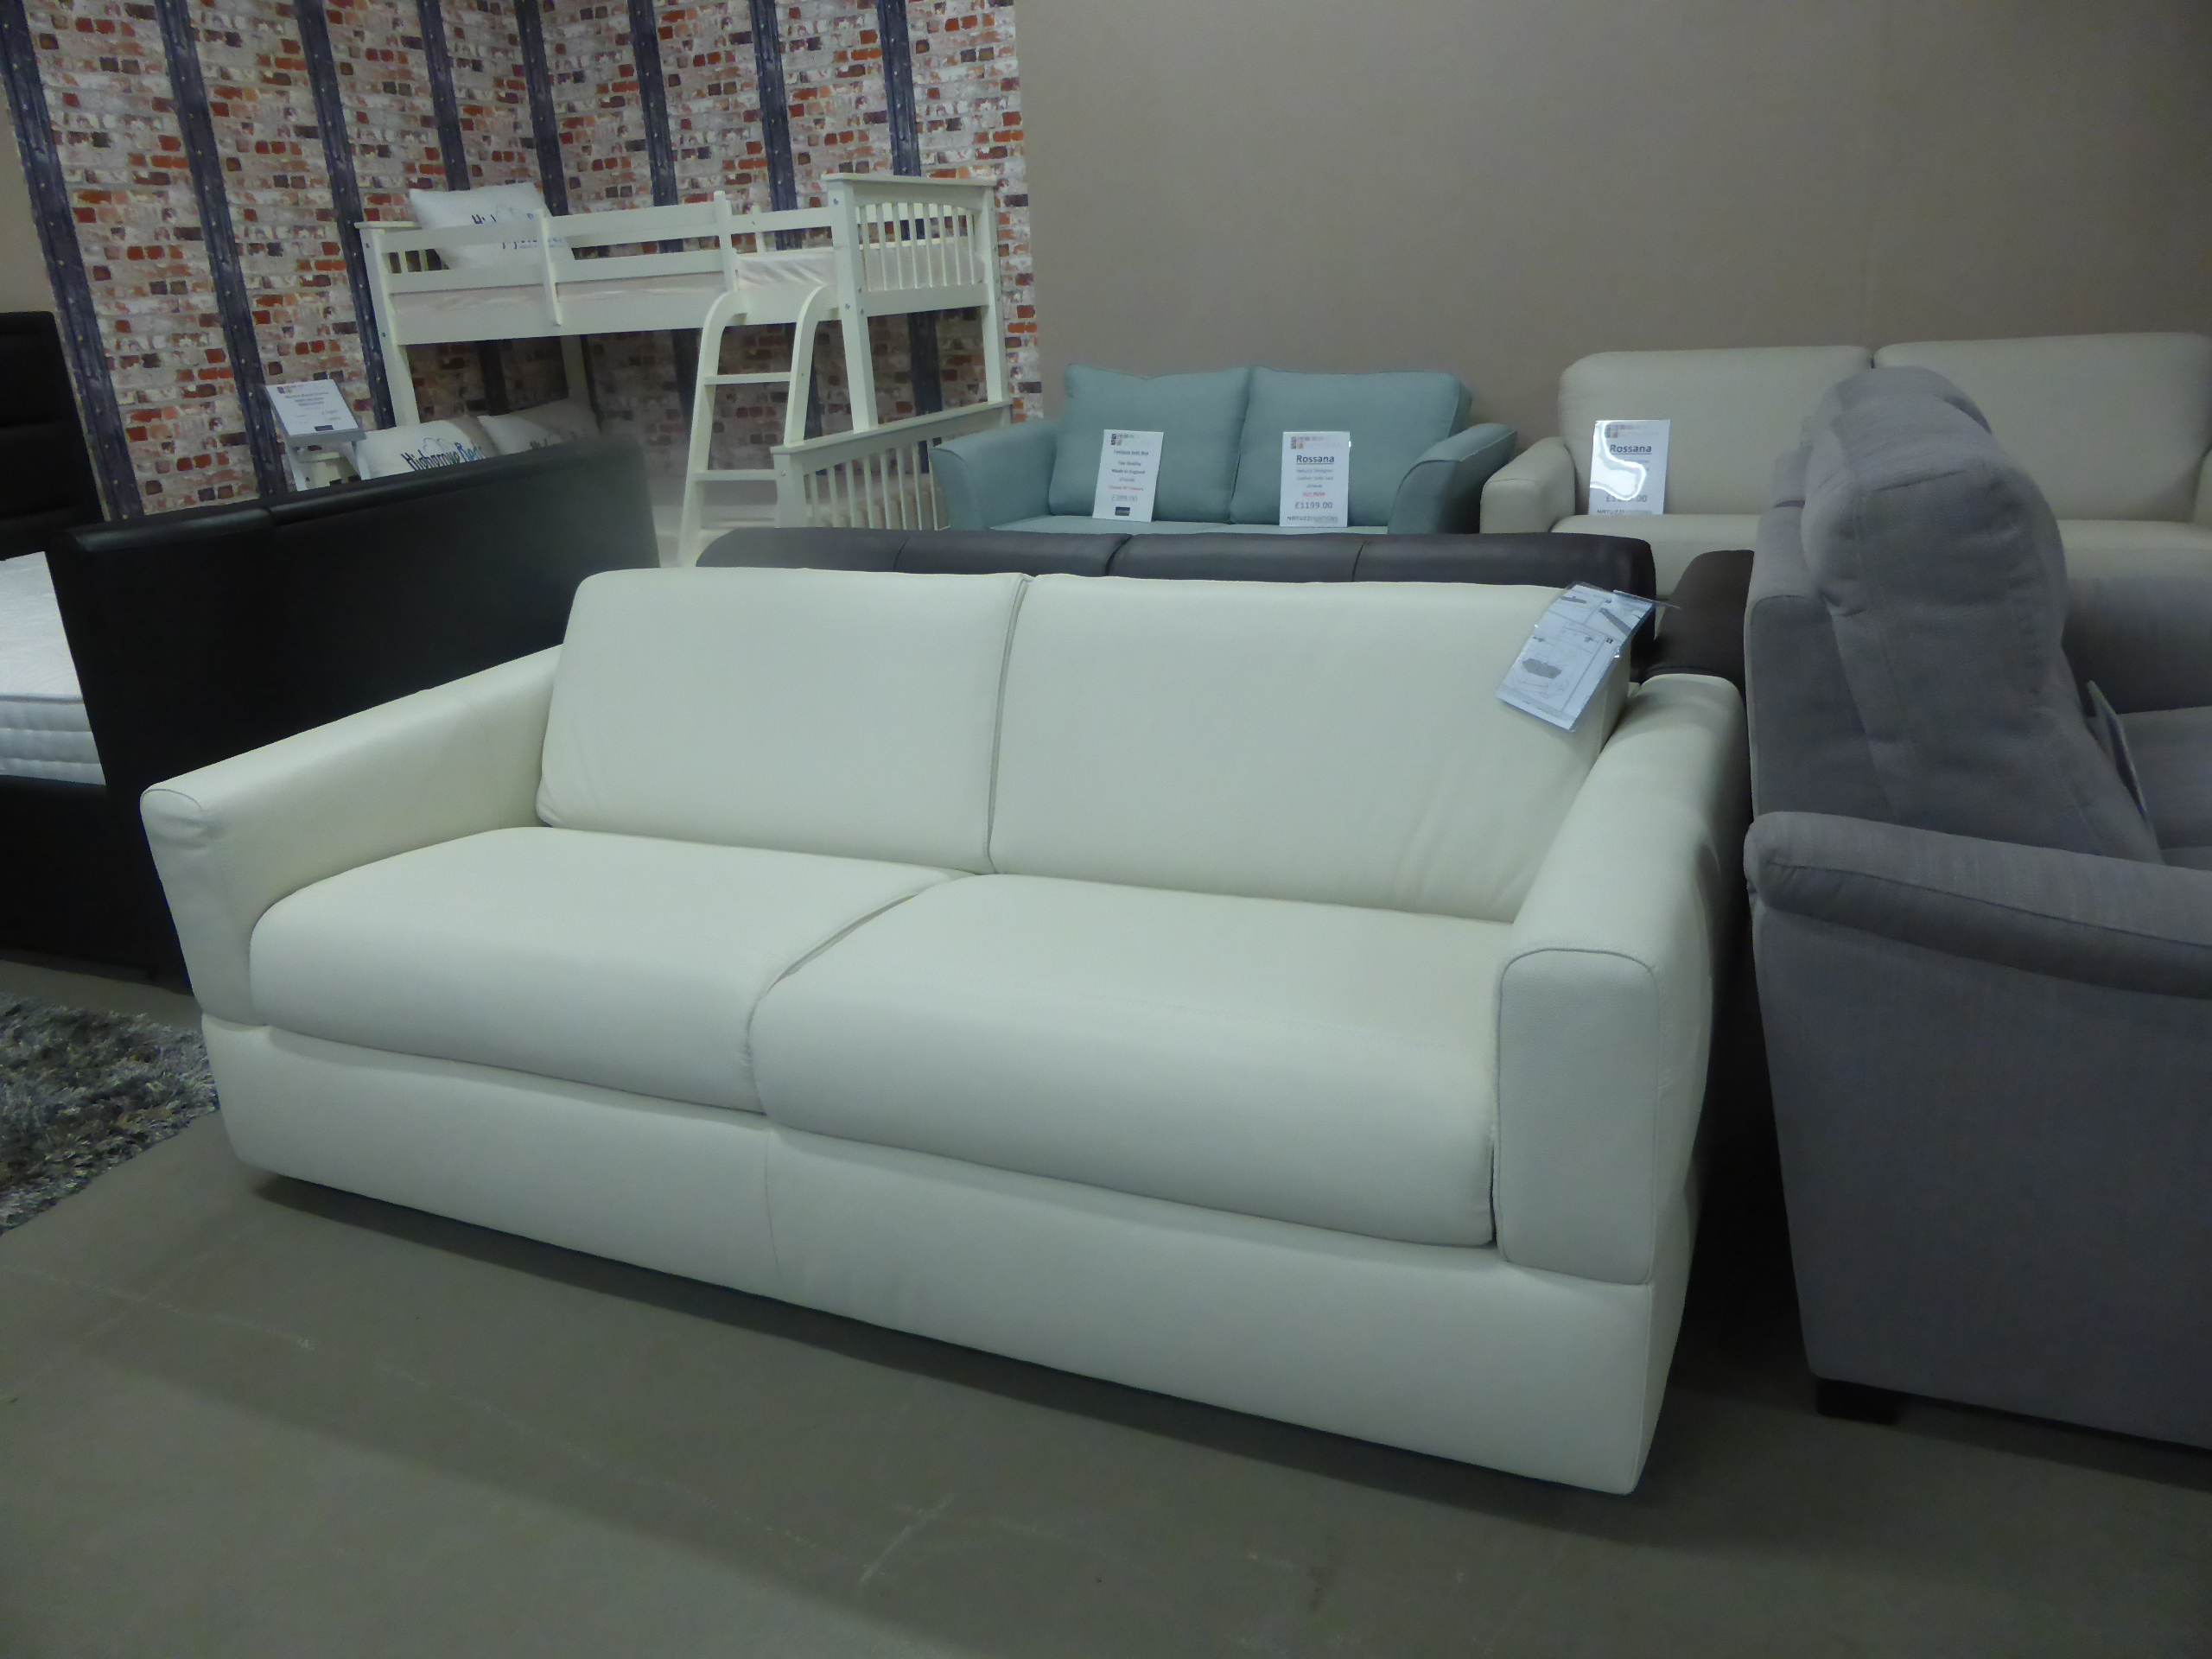 natuzzi sofa bed clearance catnapper voyager editions rossana italian leather white